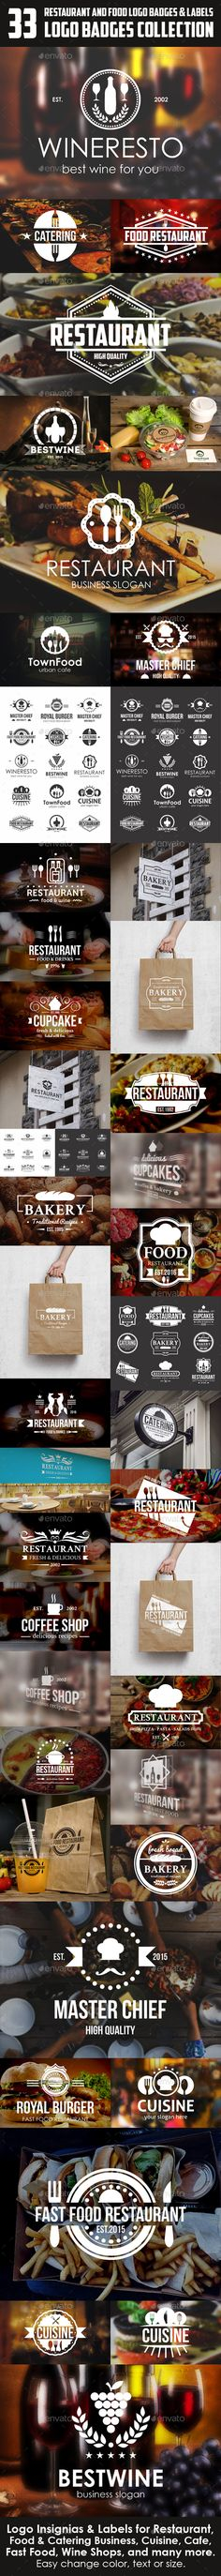 Restaurant Food Badges Logos & Labels Bundle – 33 Vintage Logo Insignias & Labels for Restaurant, Food & Catering Business, Cuisine, Bakery, Bakery Cupcakes, bakery labels, Bread Shop, coffee and cupcake shops, bar, Cafe, Fast Food, Bistro, Wine Shops, and many more. Handcrafted logos ideally to start a new branding project. Also, can be used as labels, insignia or badges. – Vector Logo Badges Collection.